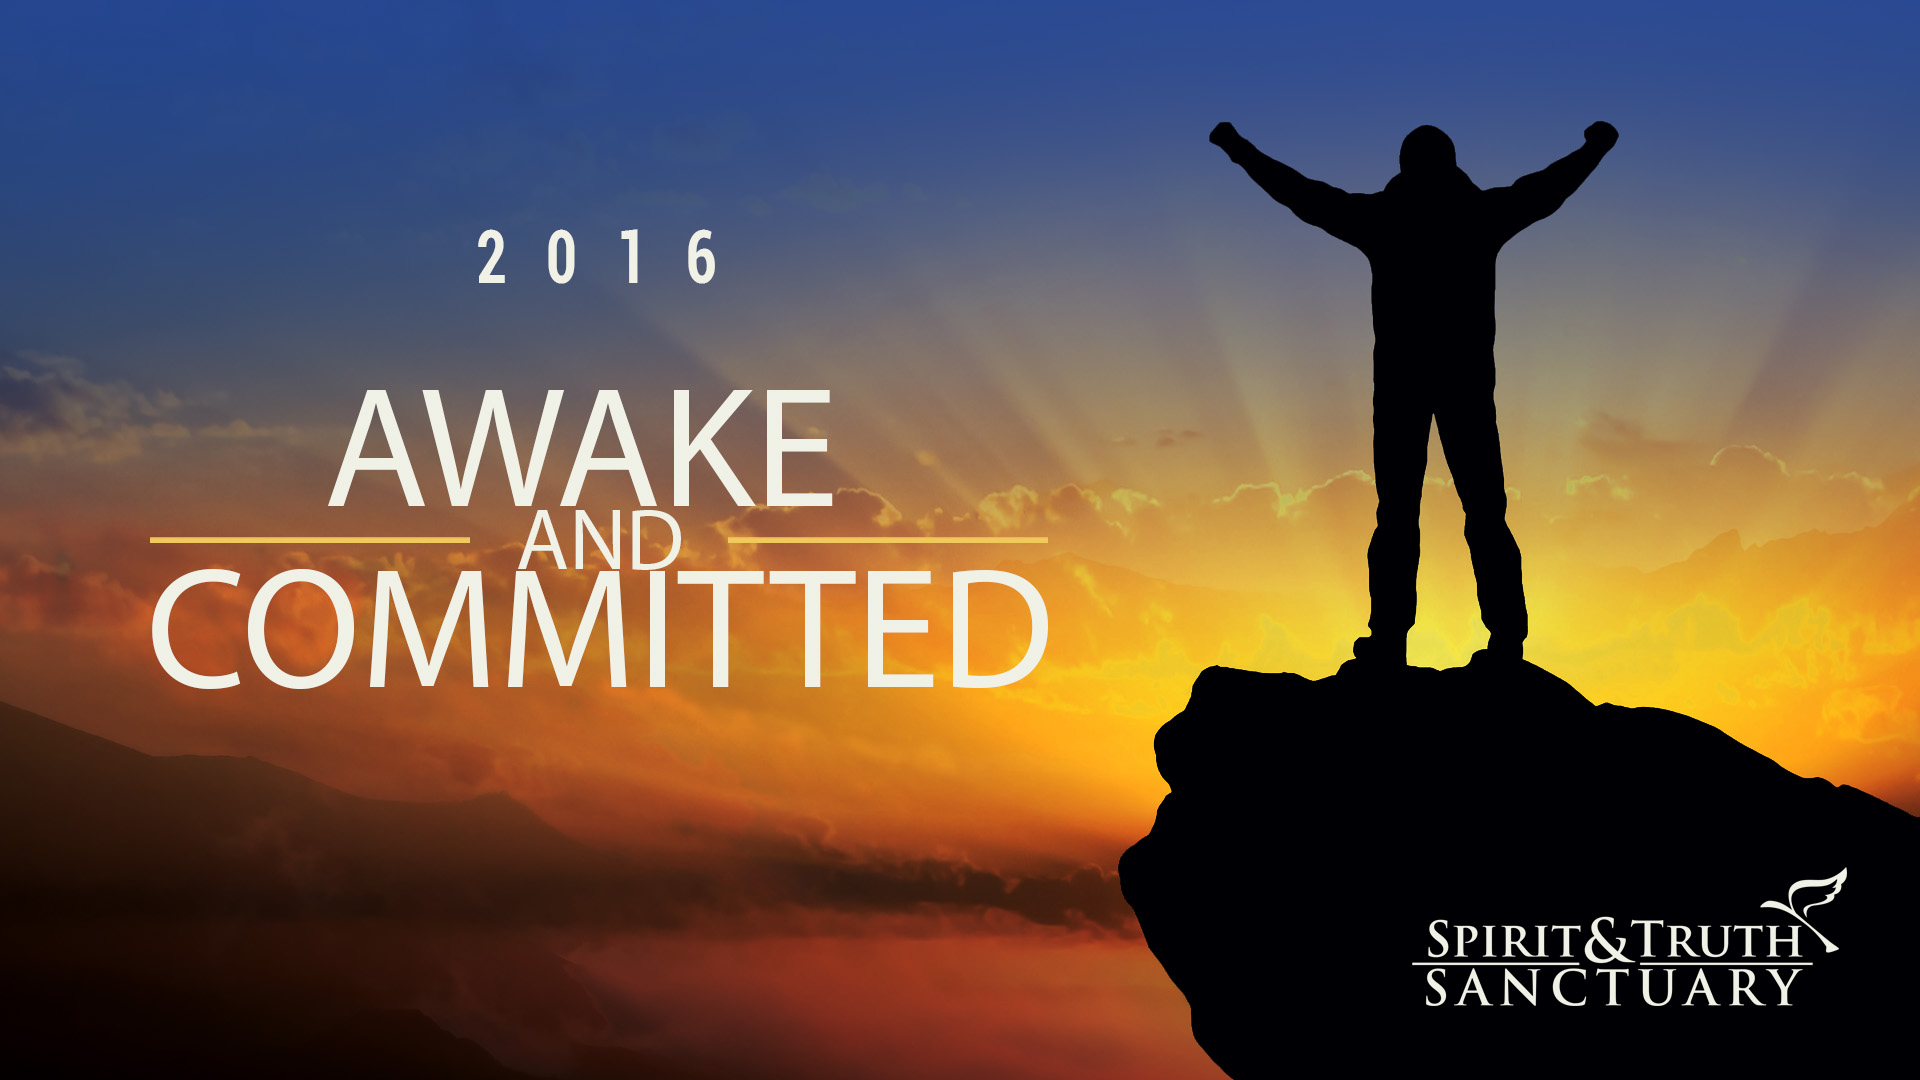 2016 - Awake and Committed